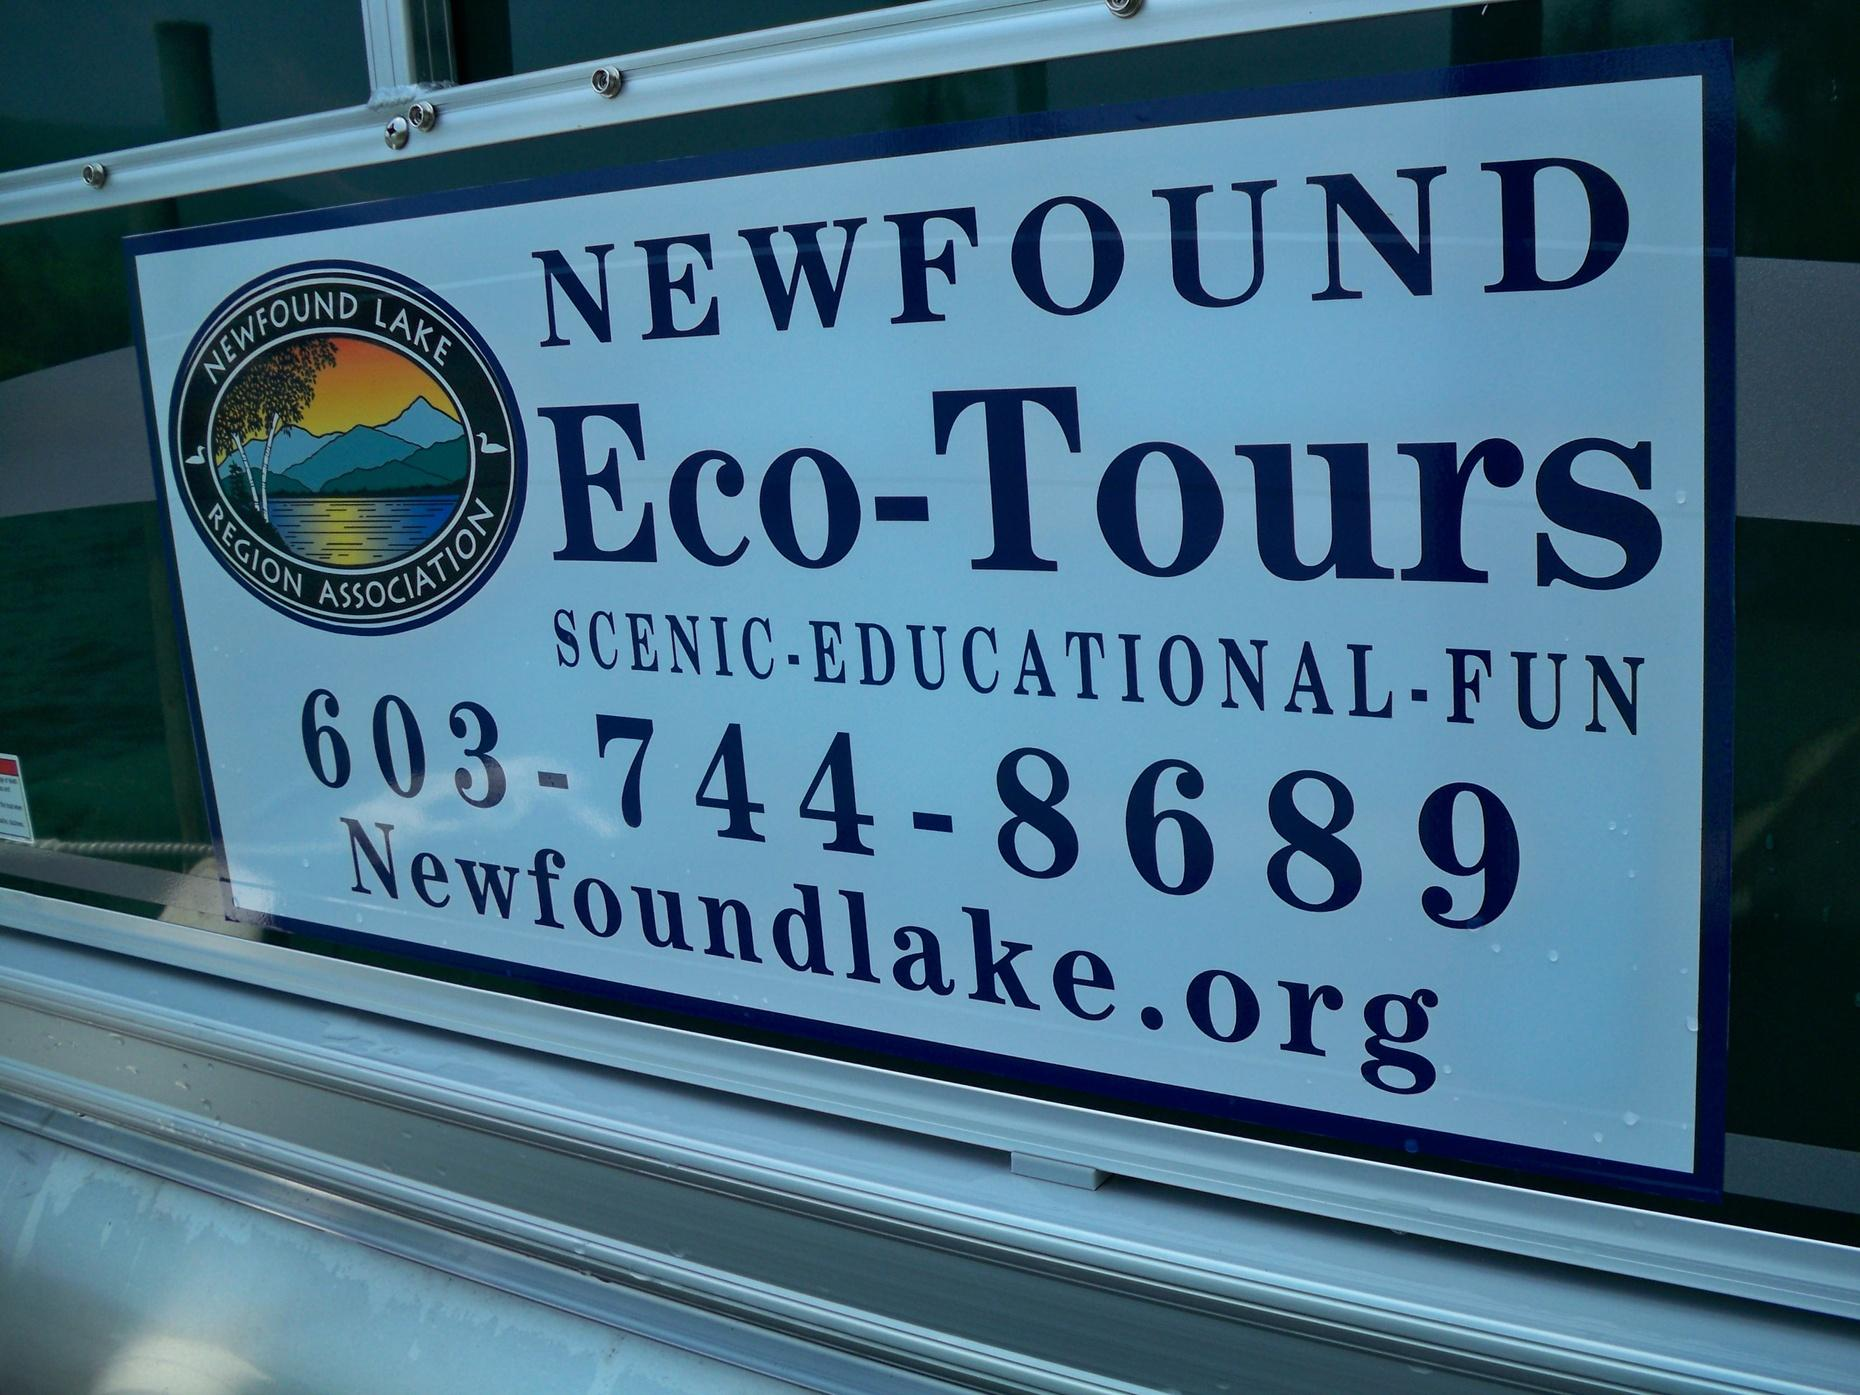 Guided EcoTour of Newfound Lake in Hebron